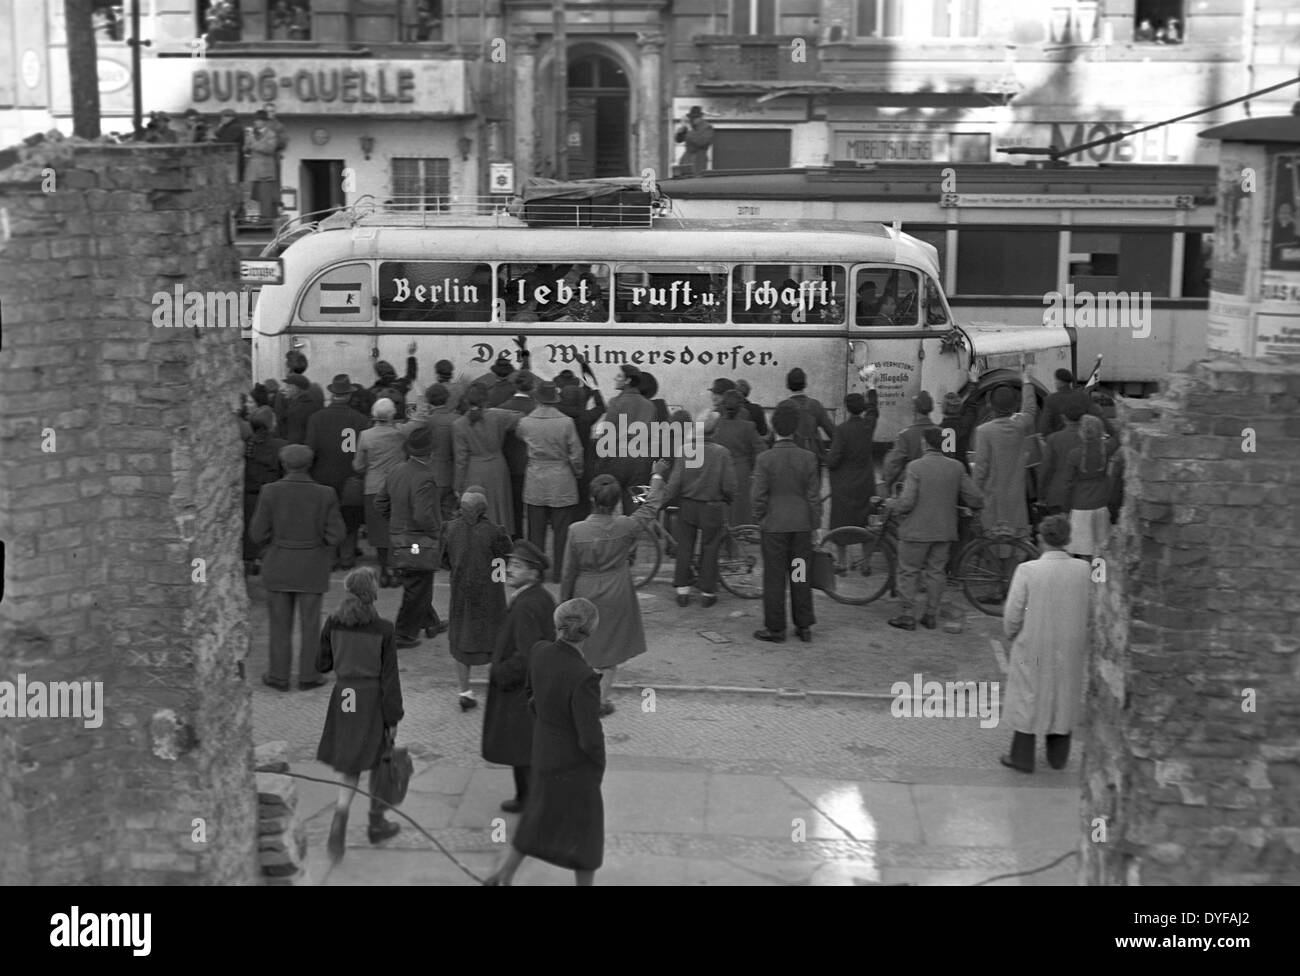 berlin blockade 1949 stockfotos berlin blockade 1949 bilder alamy. Black Bedroom Furniture Sets. Home Design Ideas